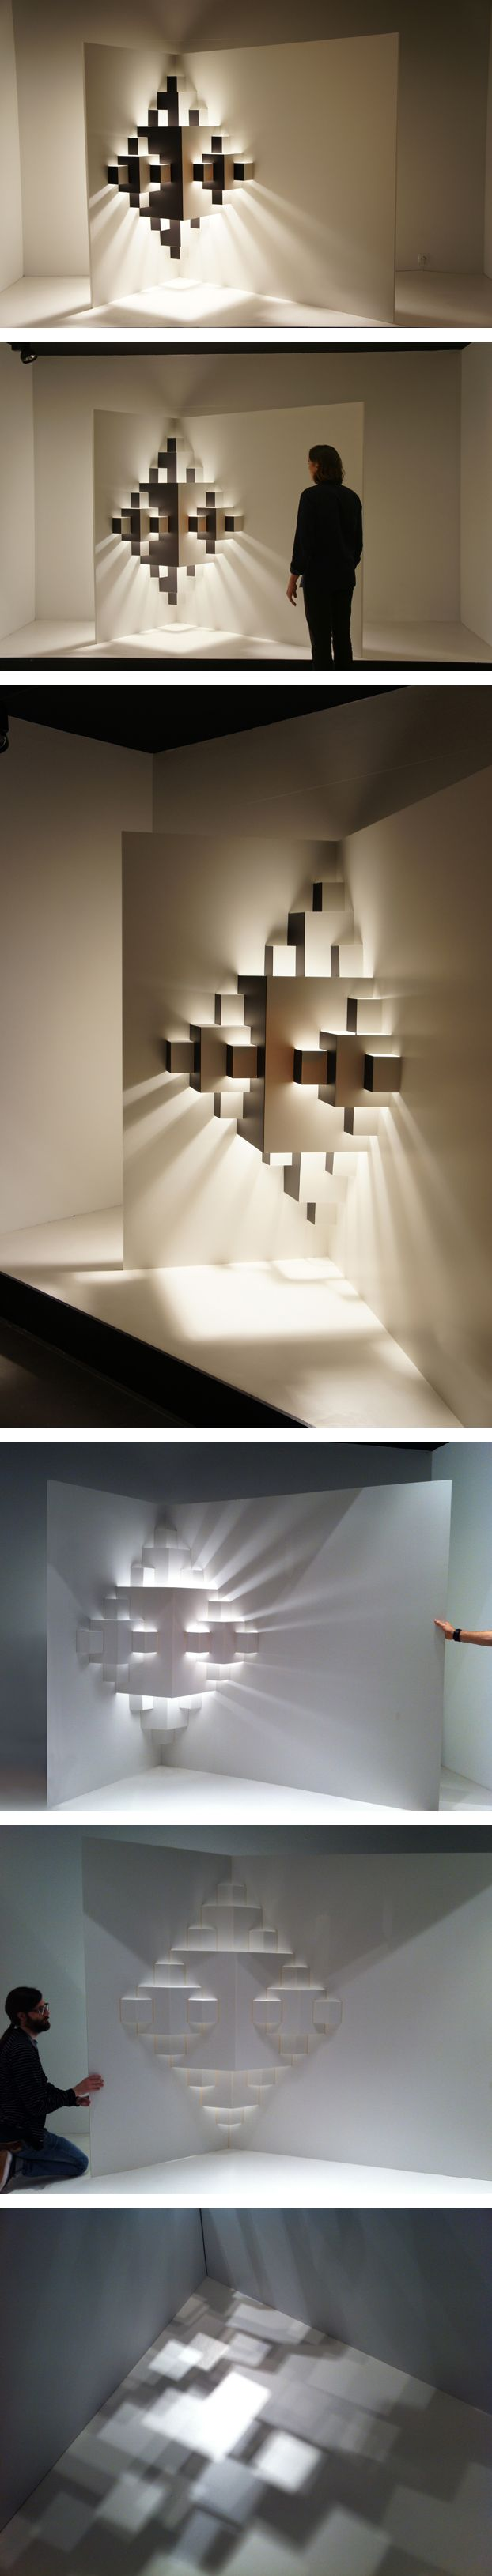 top  best display lighting ideas on pinterest  light  - pixel  well well designers window display light installation – paperdimensions x